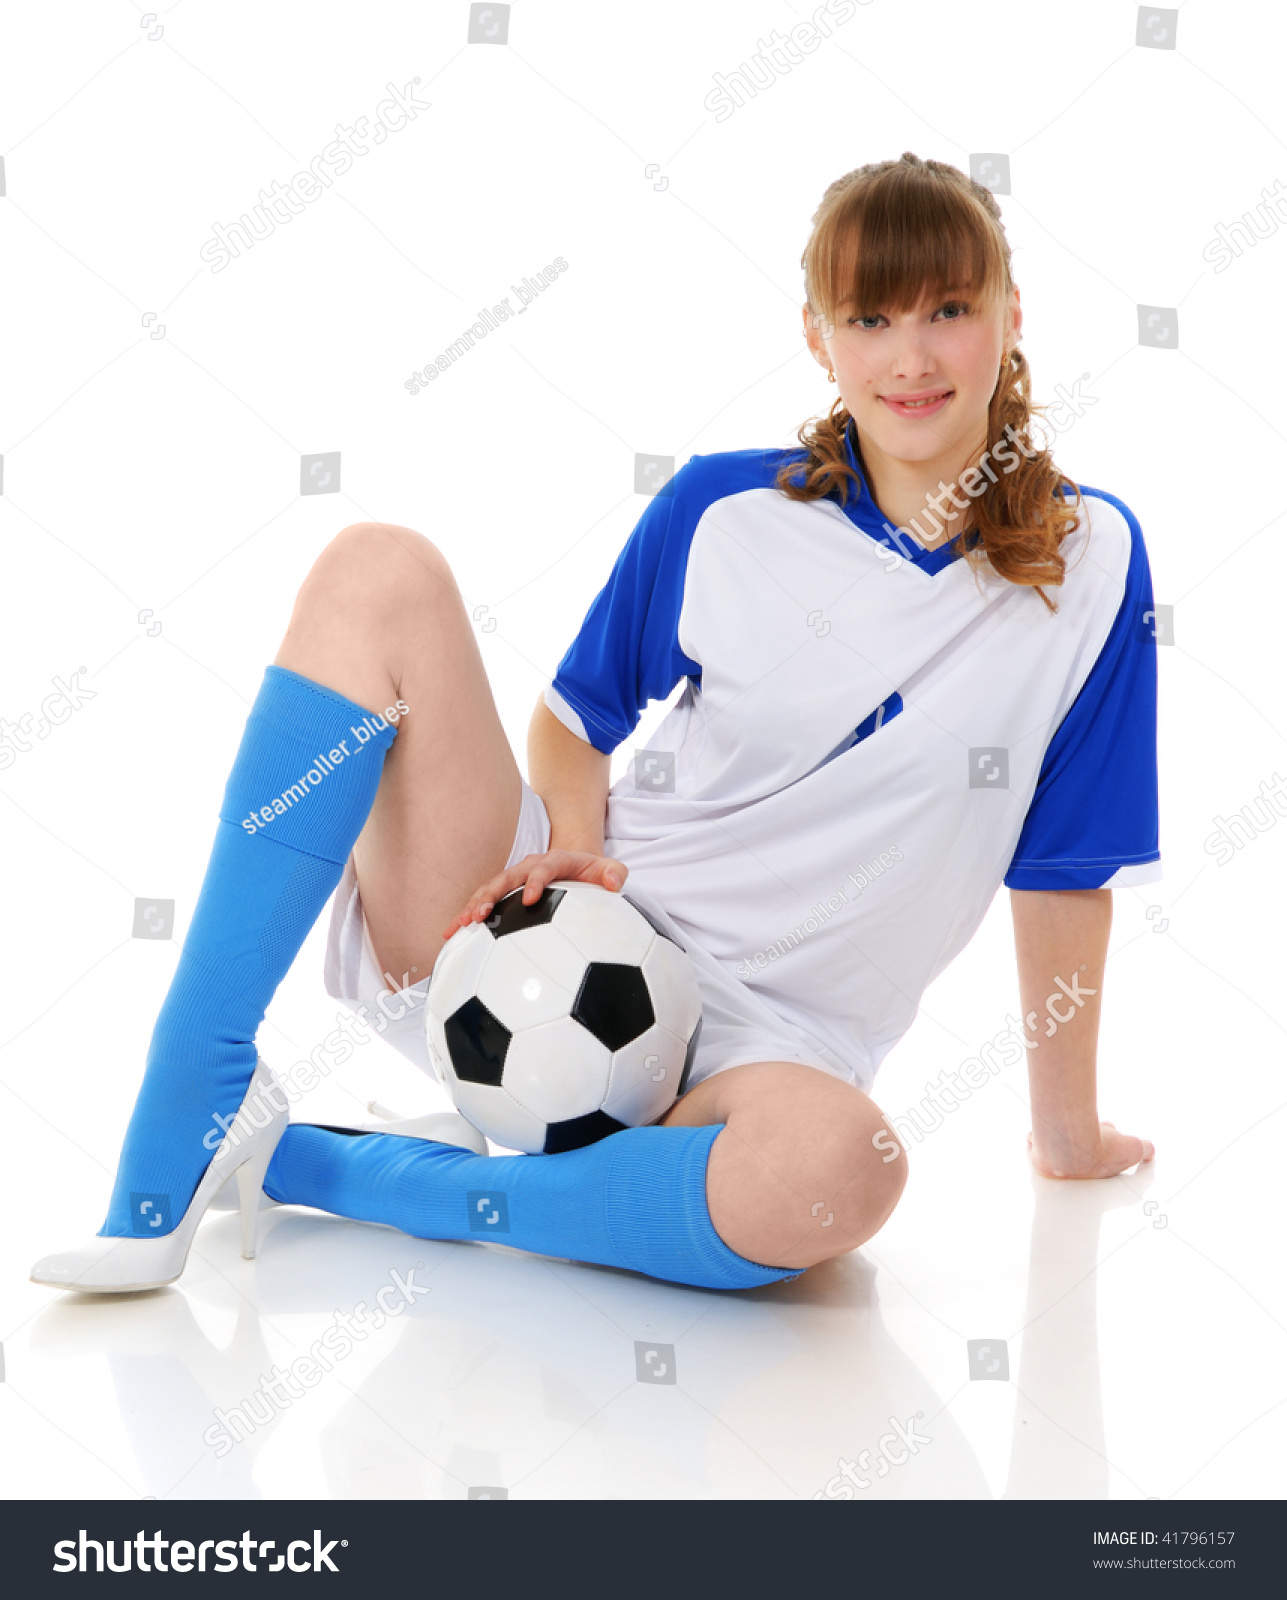 ab2a6d9c5 Young Woman Clothed Uniform Soccer Ball Stock Photo (Edit Now ...